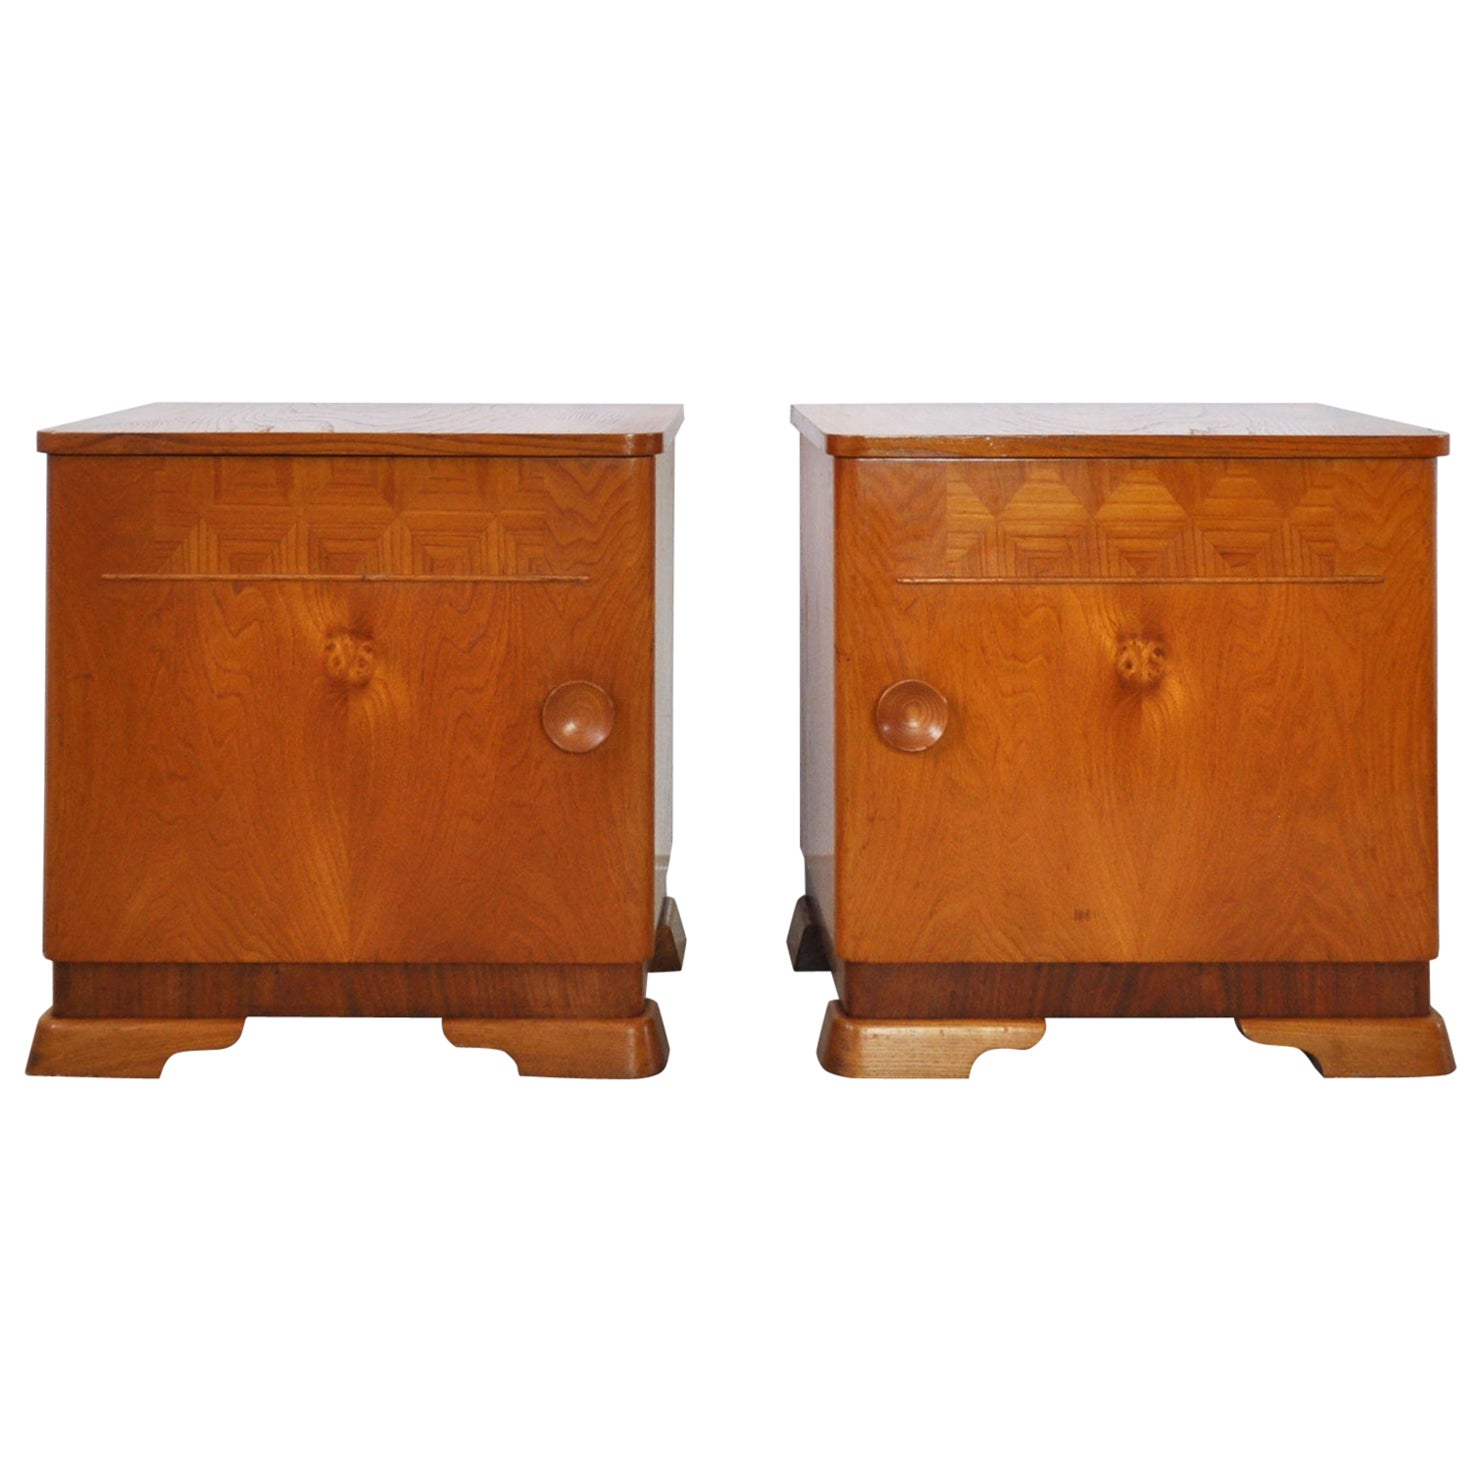 Danish Art Deco Pair of Nightstands or Small Cabinets, 1930s